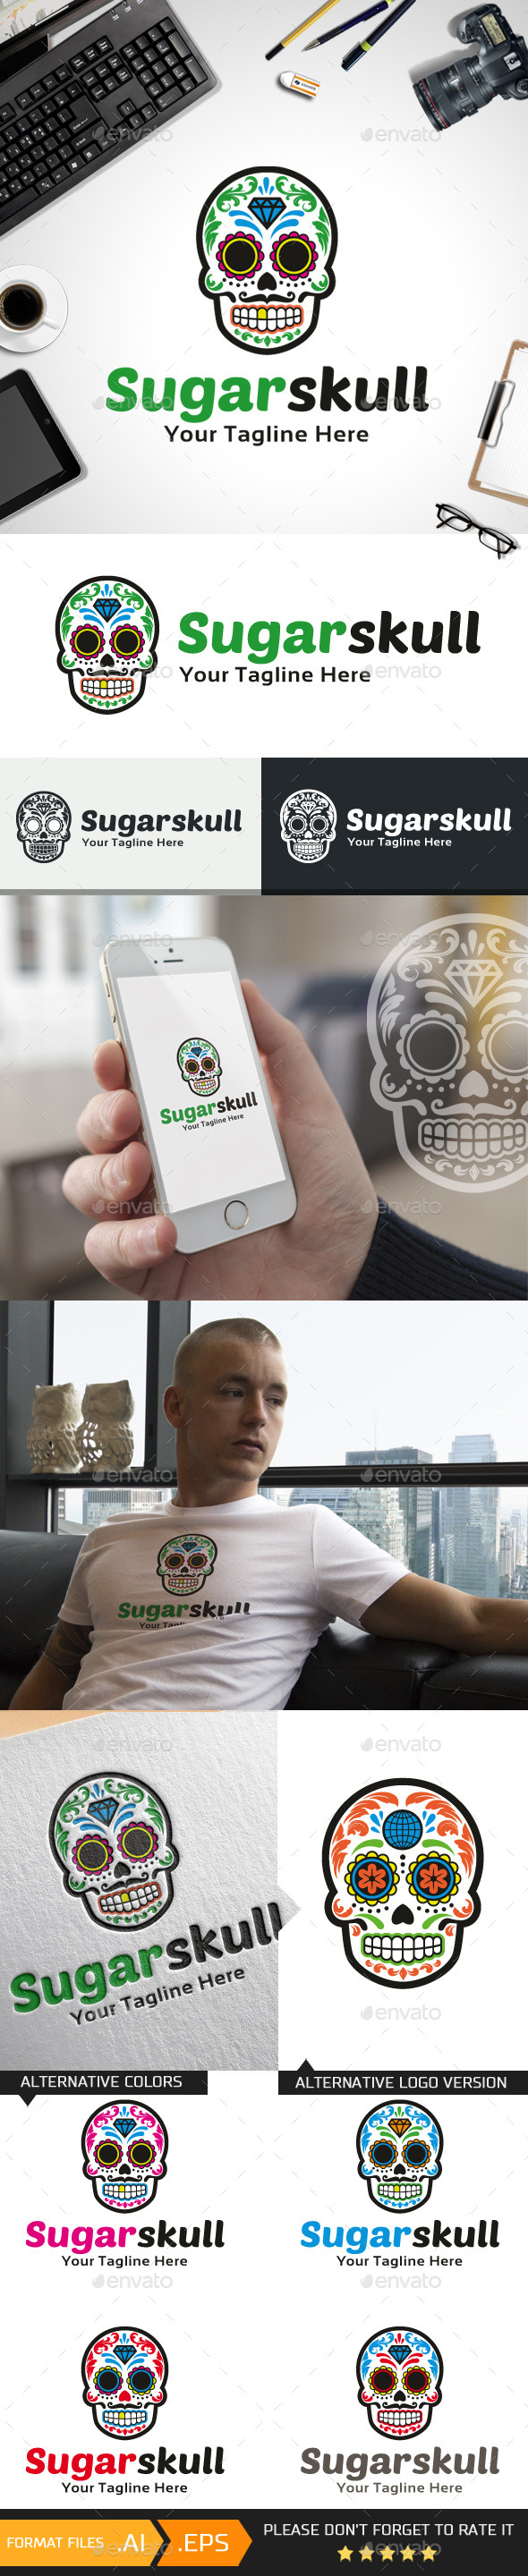 GraphicRiver Sugar skull Logo Template 10456450